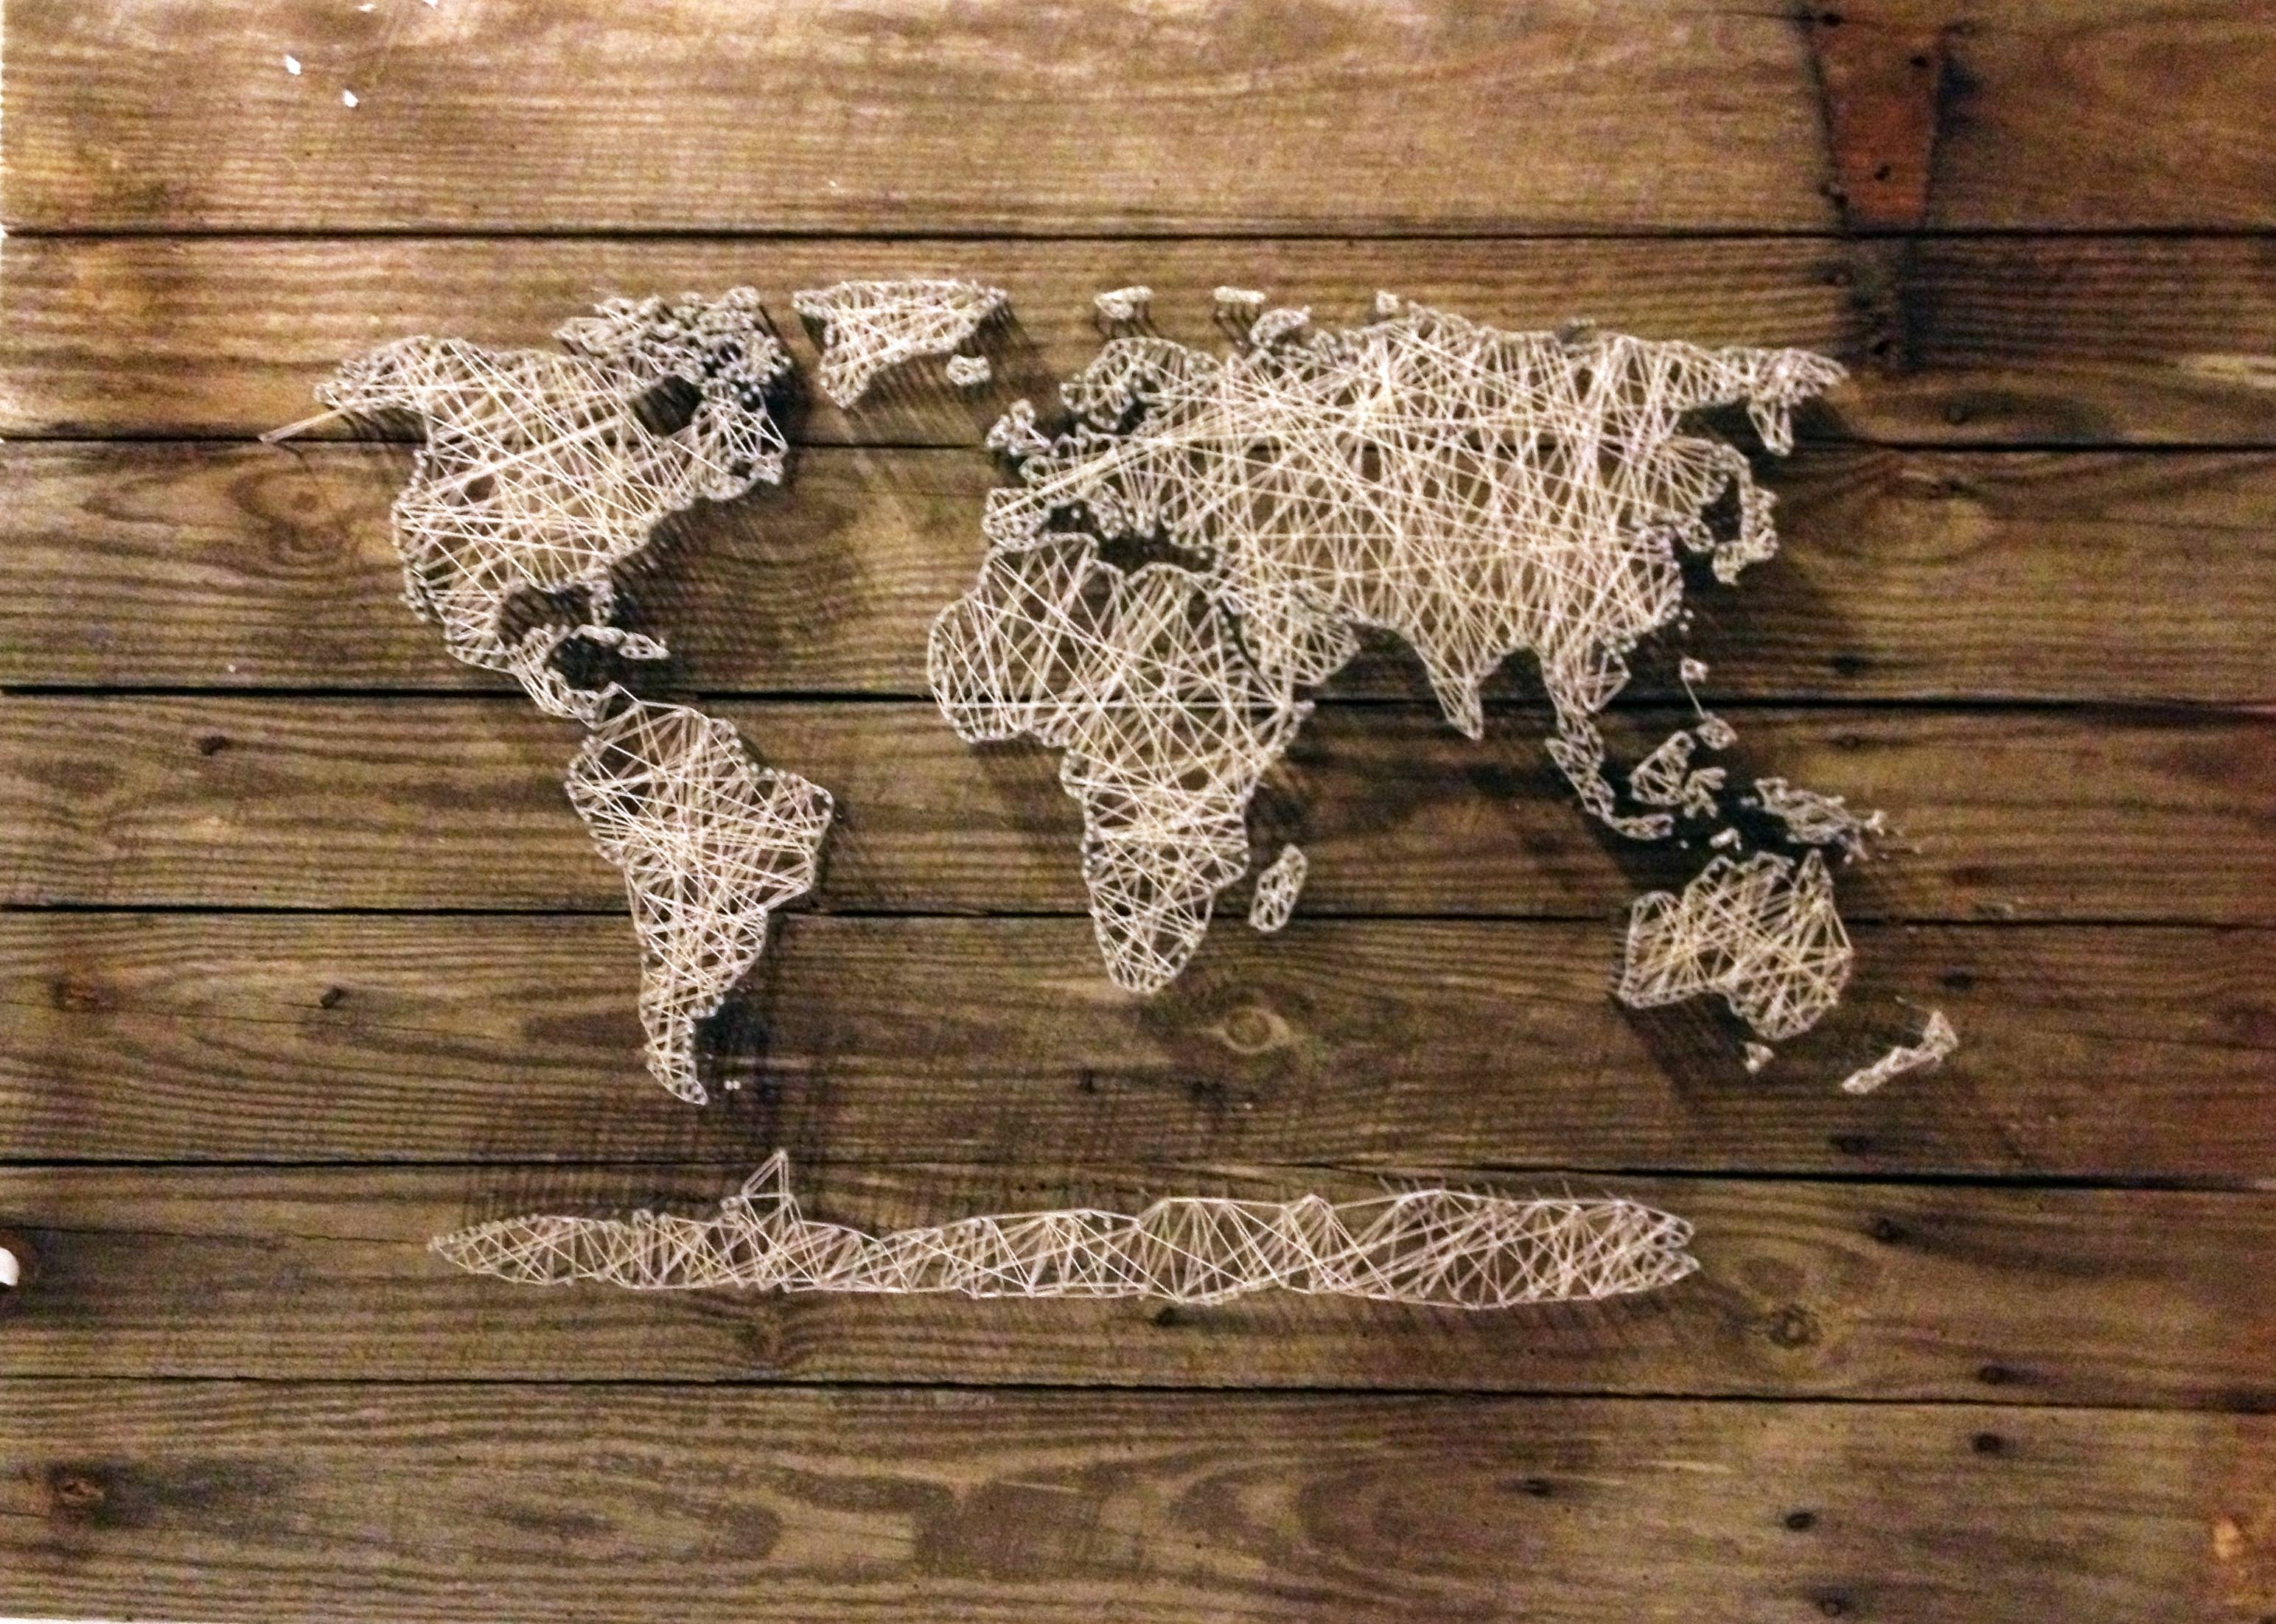 World Map, String Art | Existence Reclaimed Regarding Most Up To Date String Map Wall Art (View 7 of 20)